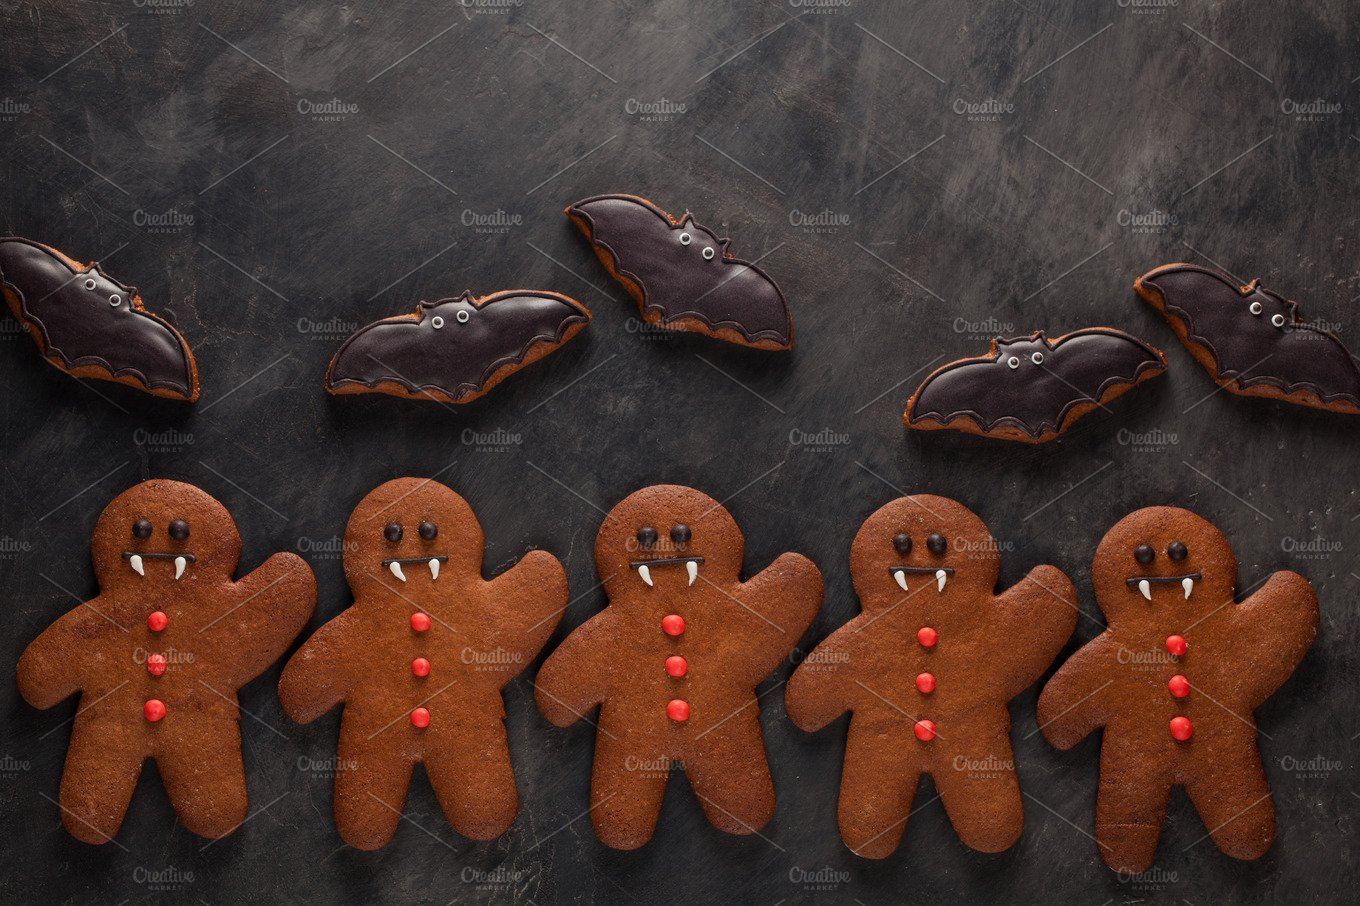 Homemade gingerbread cookies for Halloween in the form of bats and  gingerbread men vampire on dark concrete background. Top view |  High-Quality Holiday Stock Photos ~ Creative Market